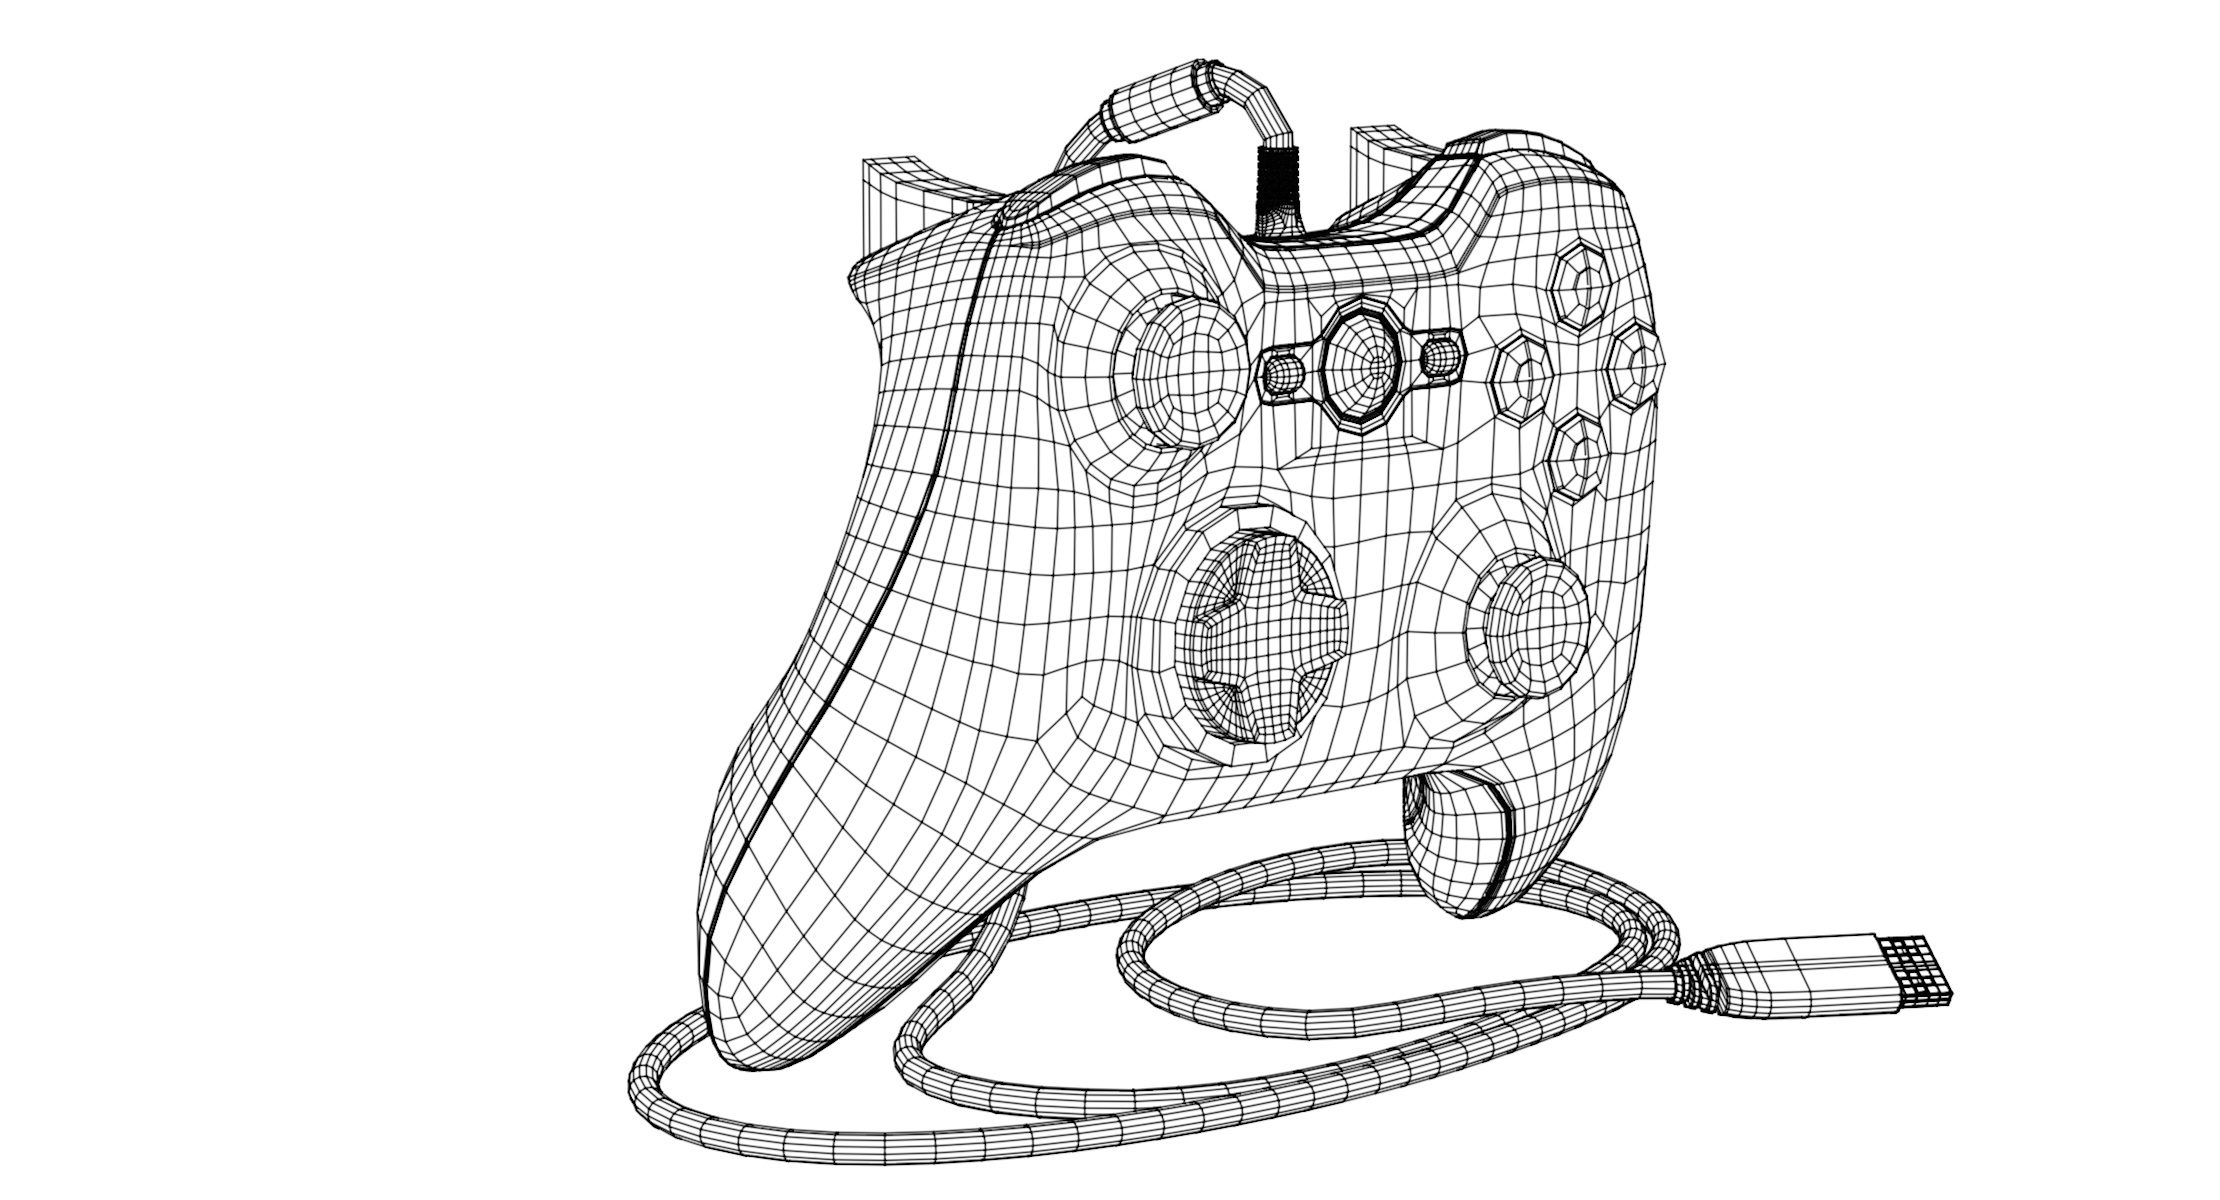 Xbox Controller Wireframe Halcyon Animation